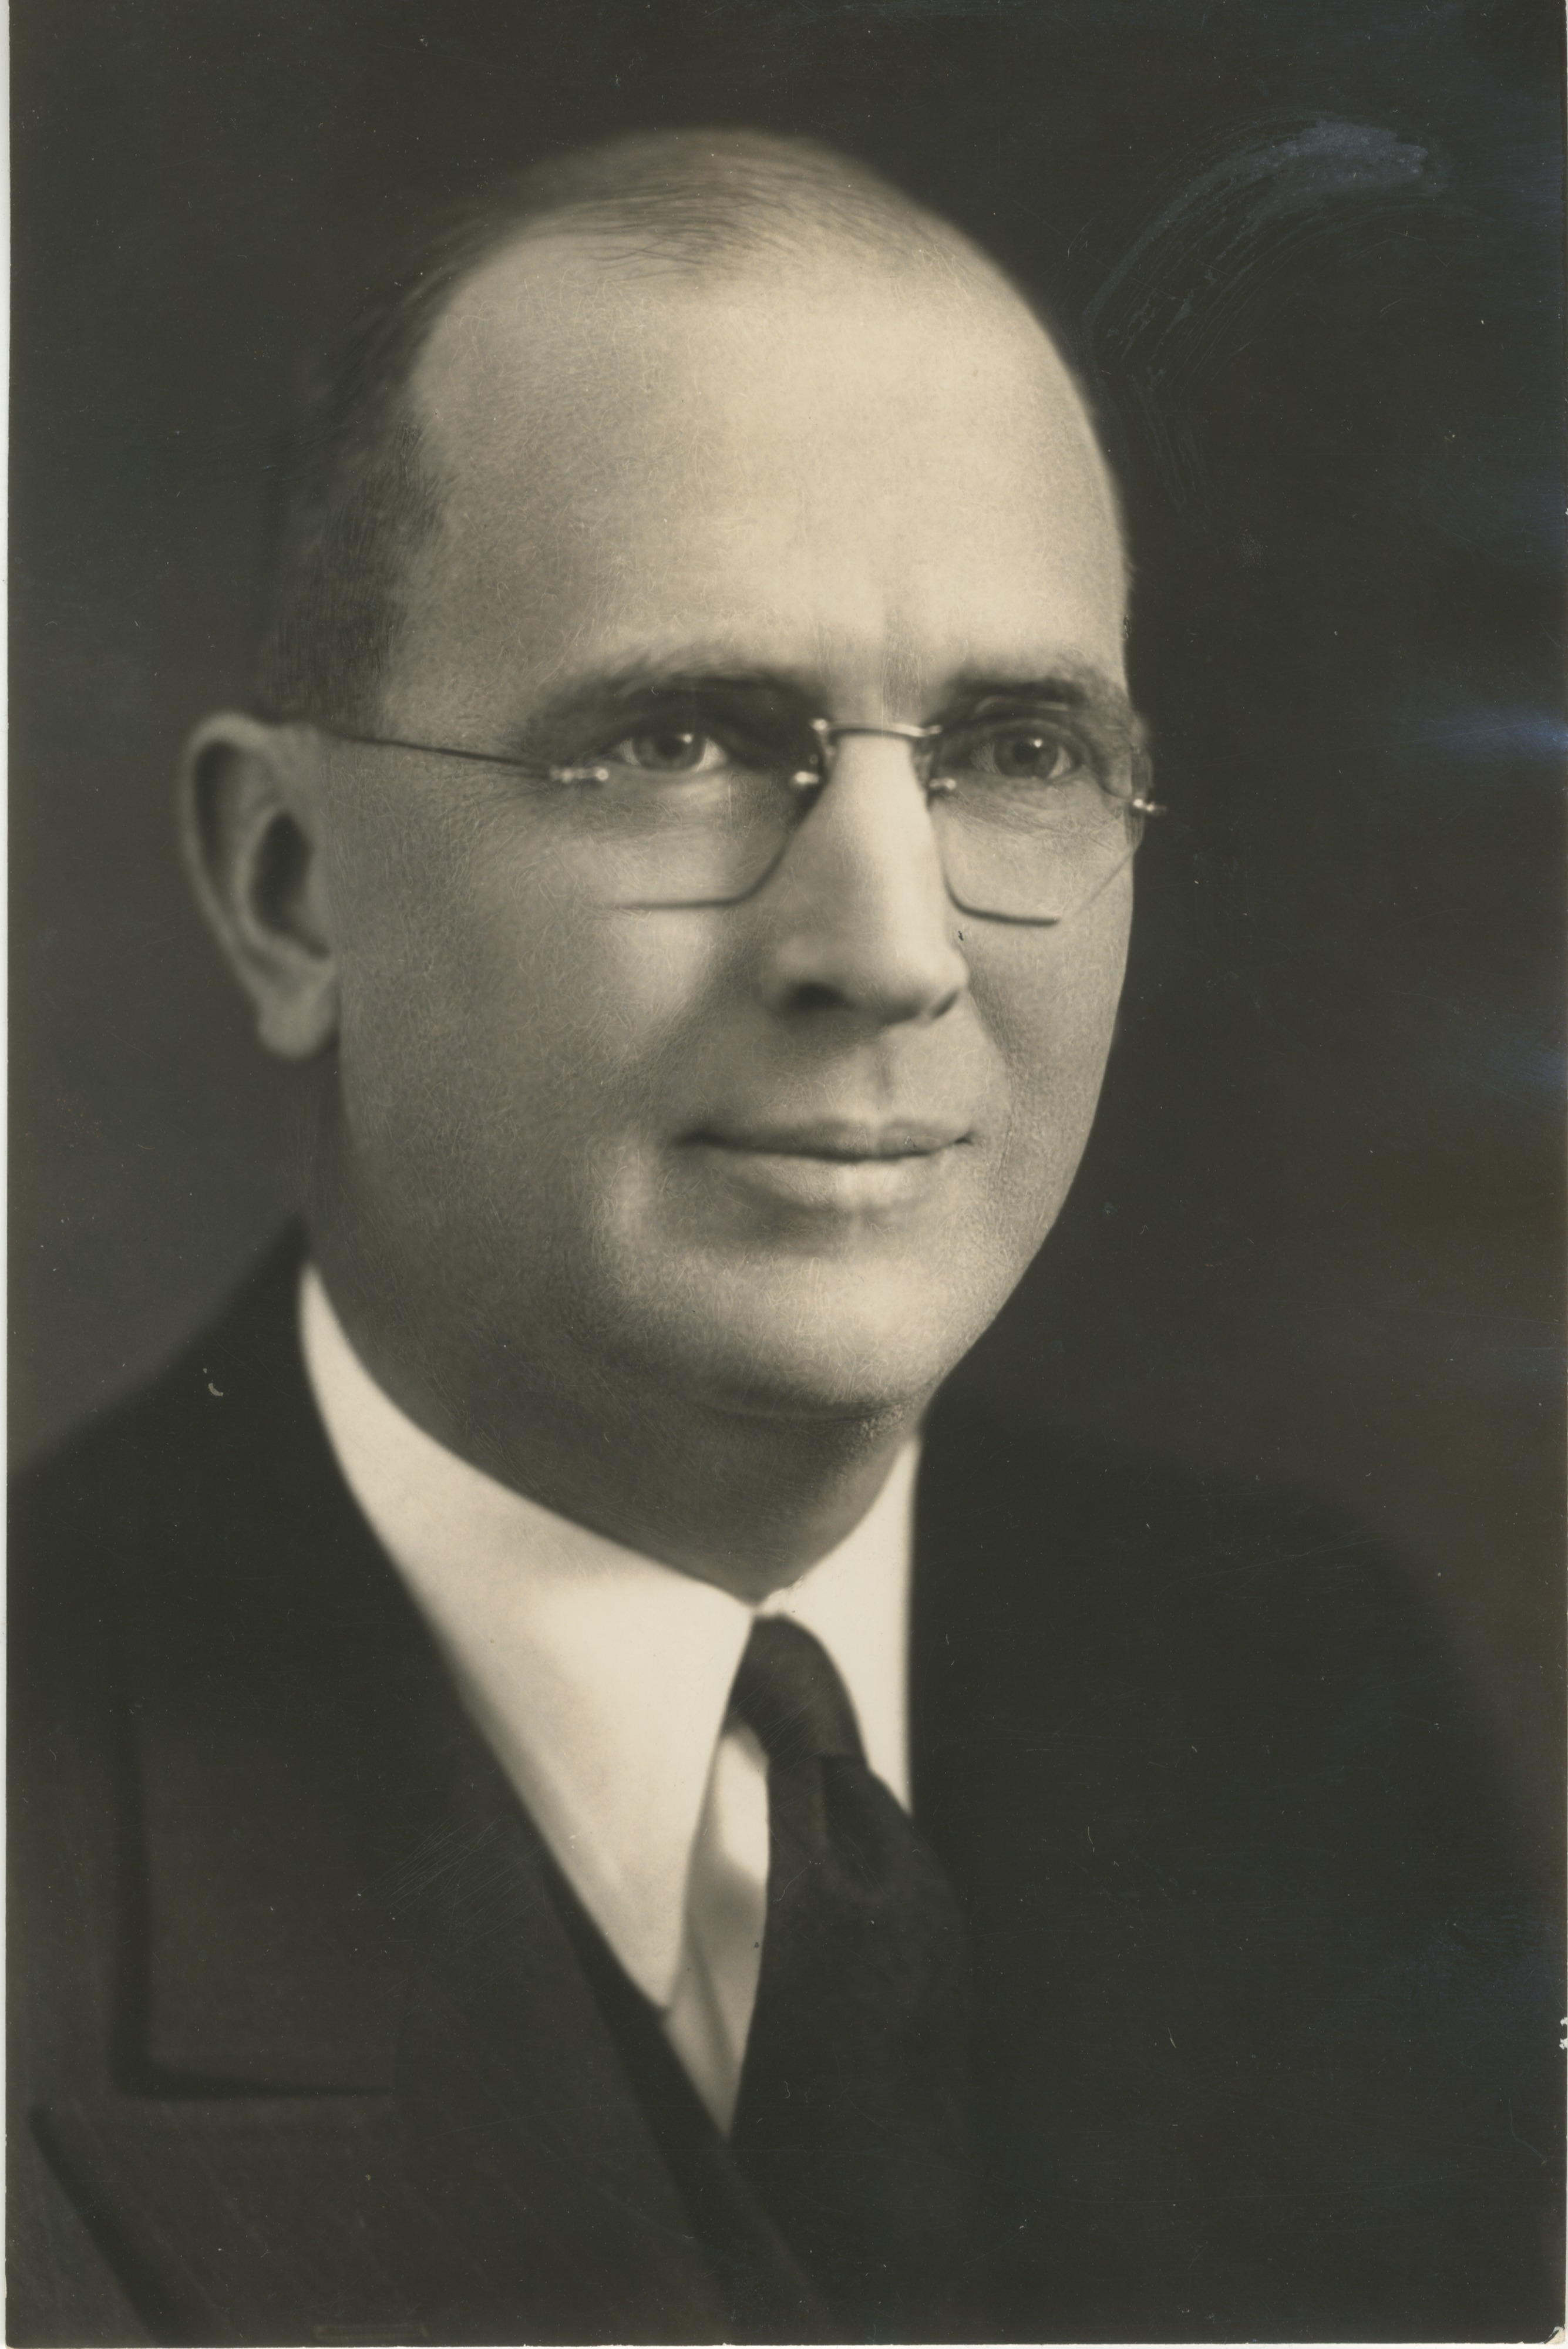 University of Michigan Prof. Lewis G. Vandervelde, Founder of the Michigan Historical Collection, November 1939 image